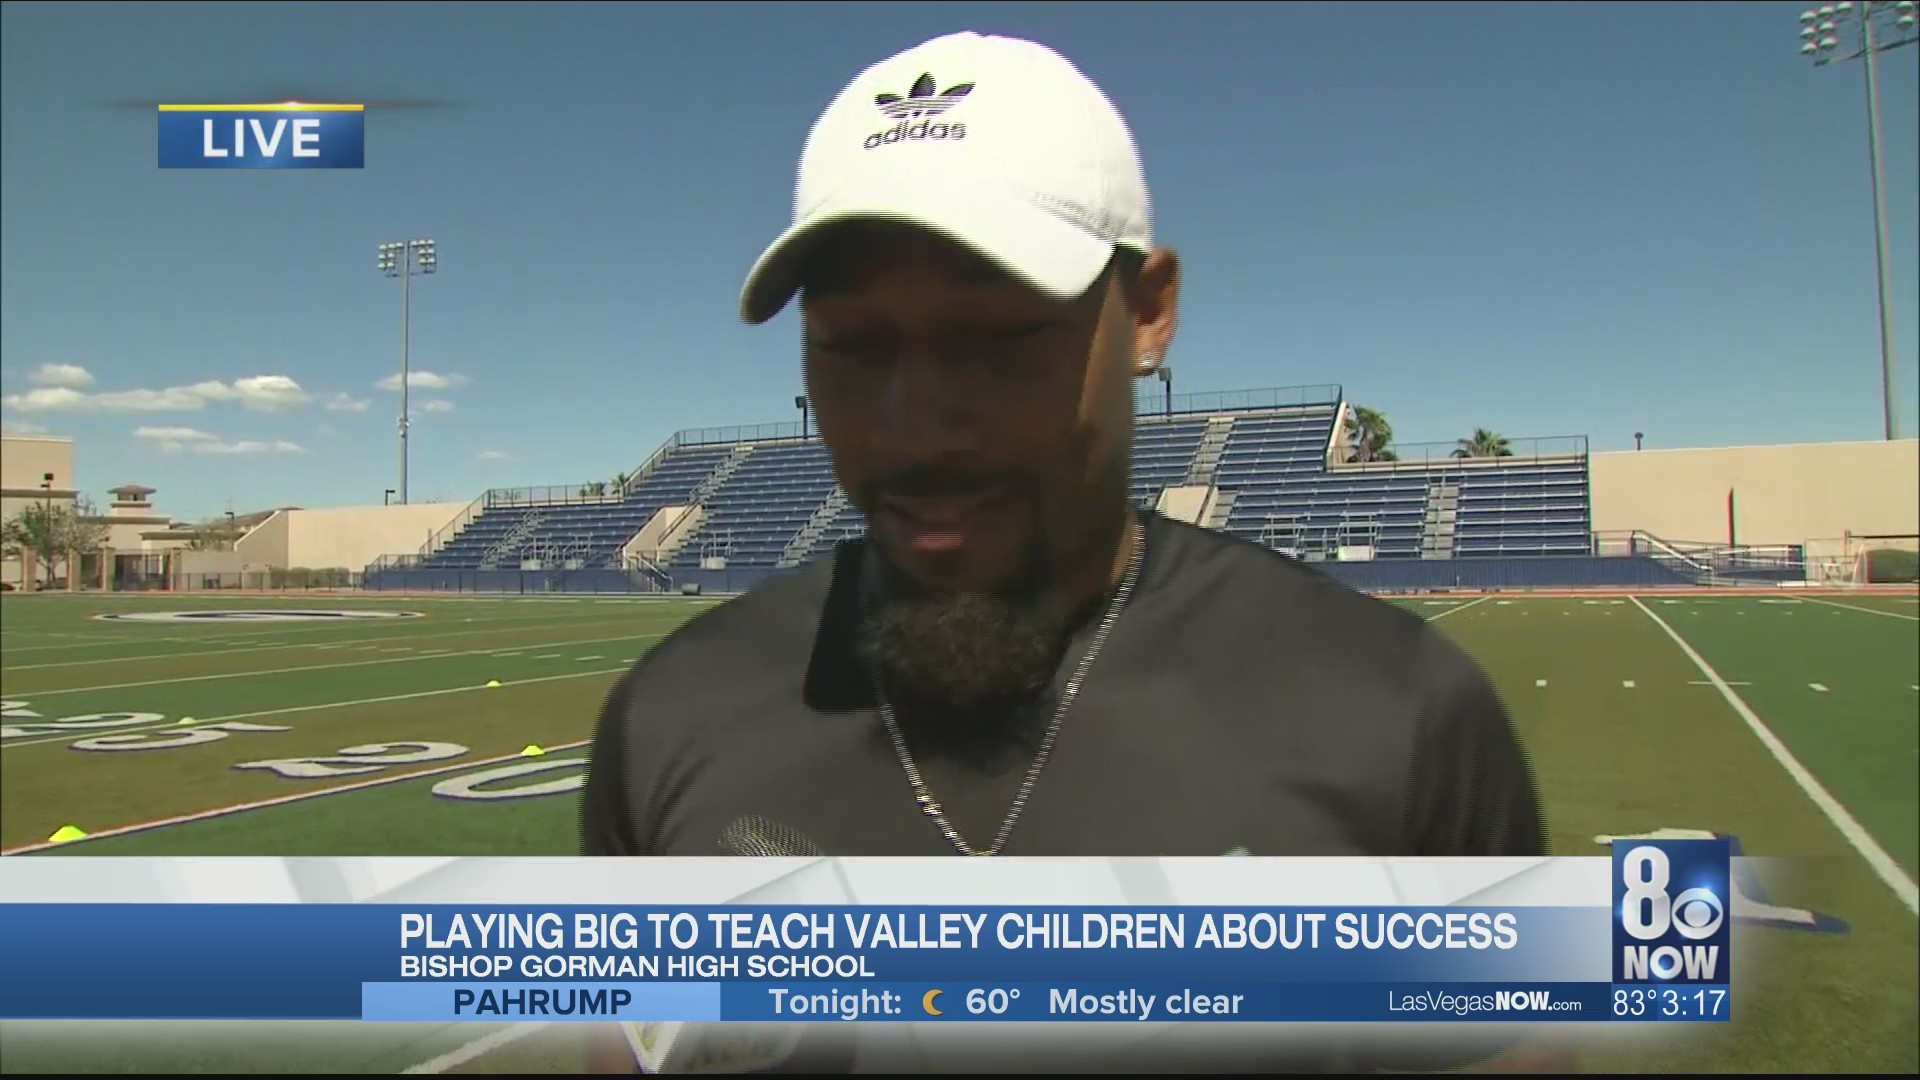 Playing Big to teach valley children about success